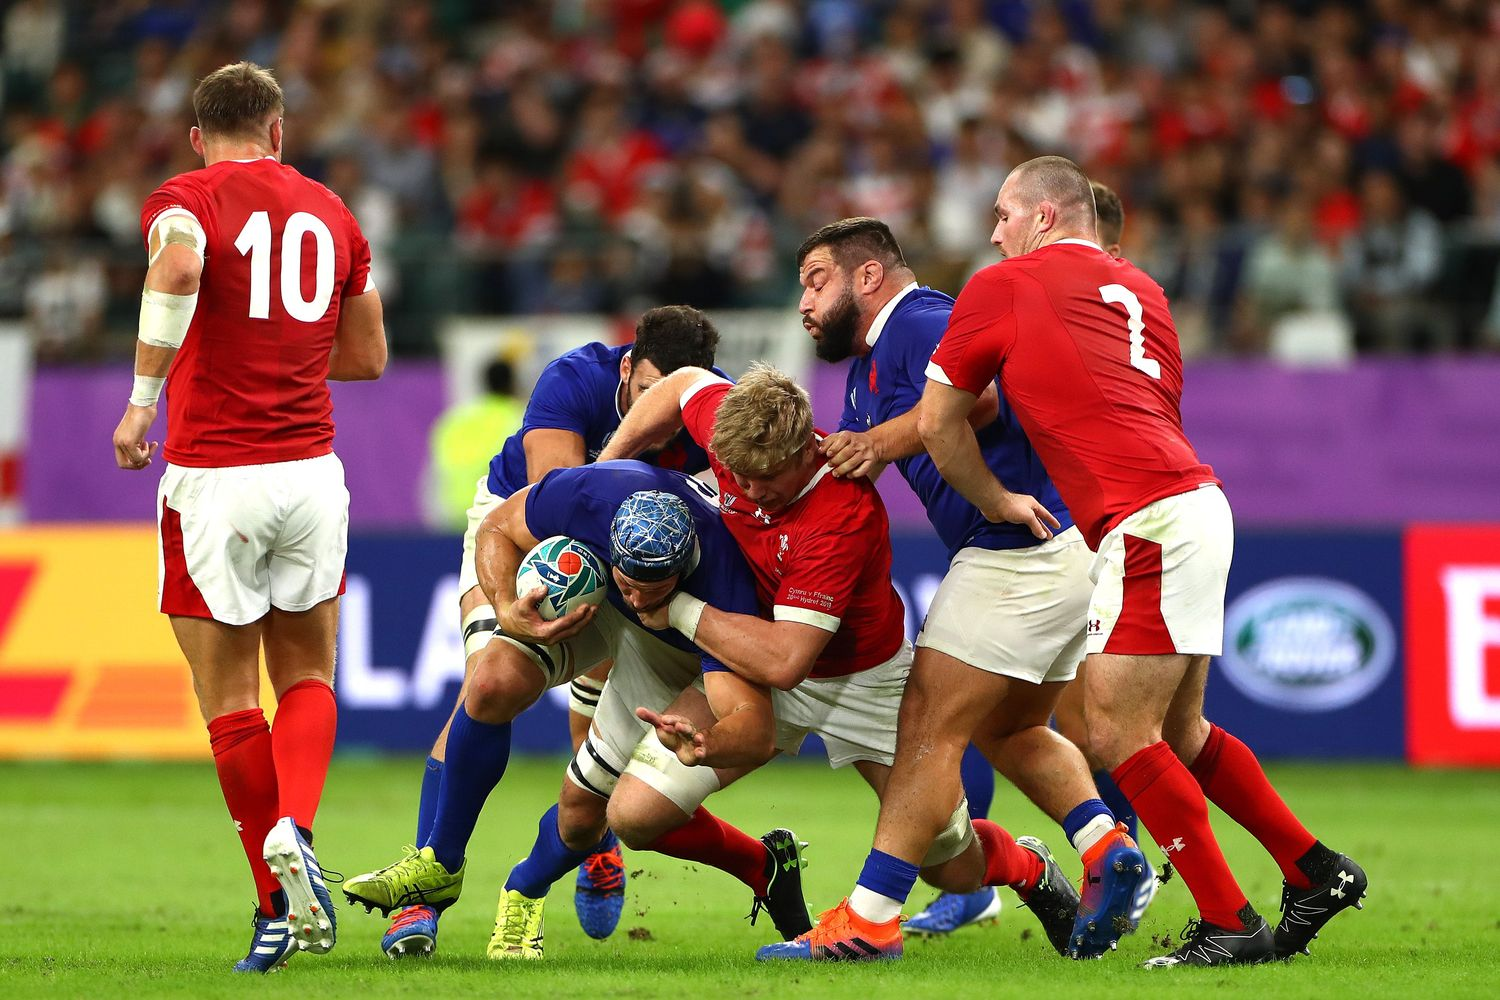 Wales v France - Rugby World Cup 2019: Quarter-Final